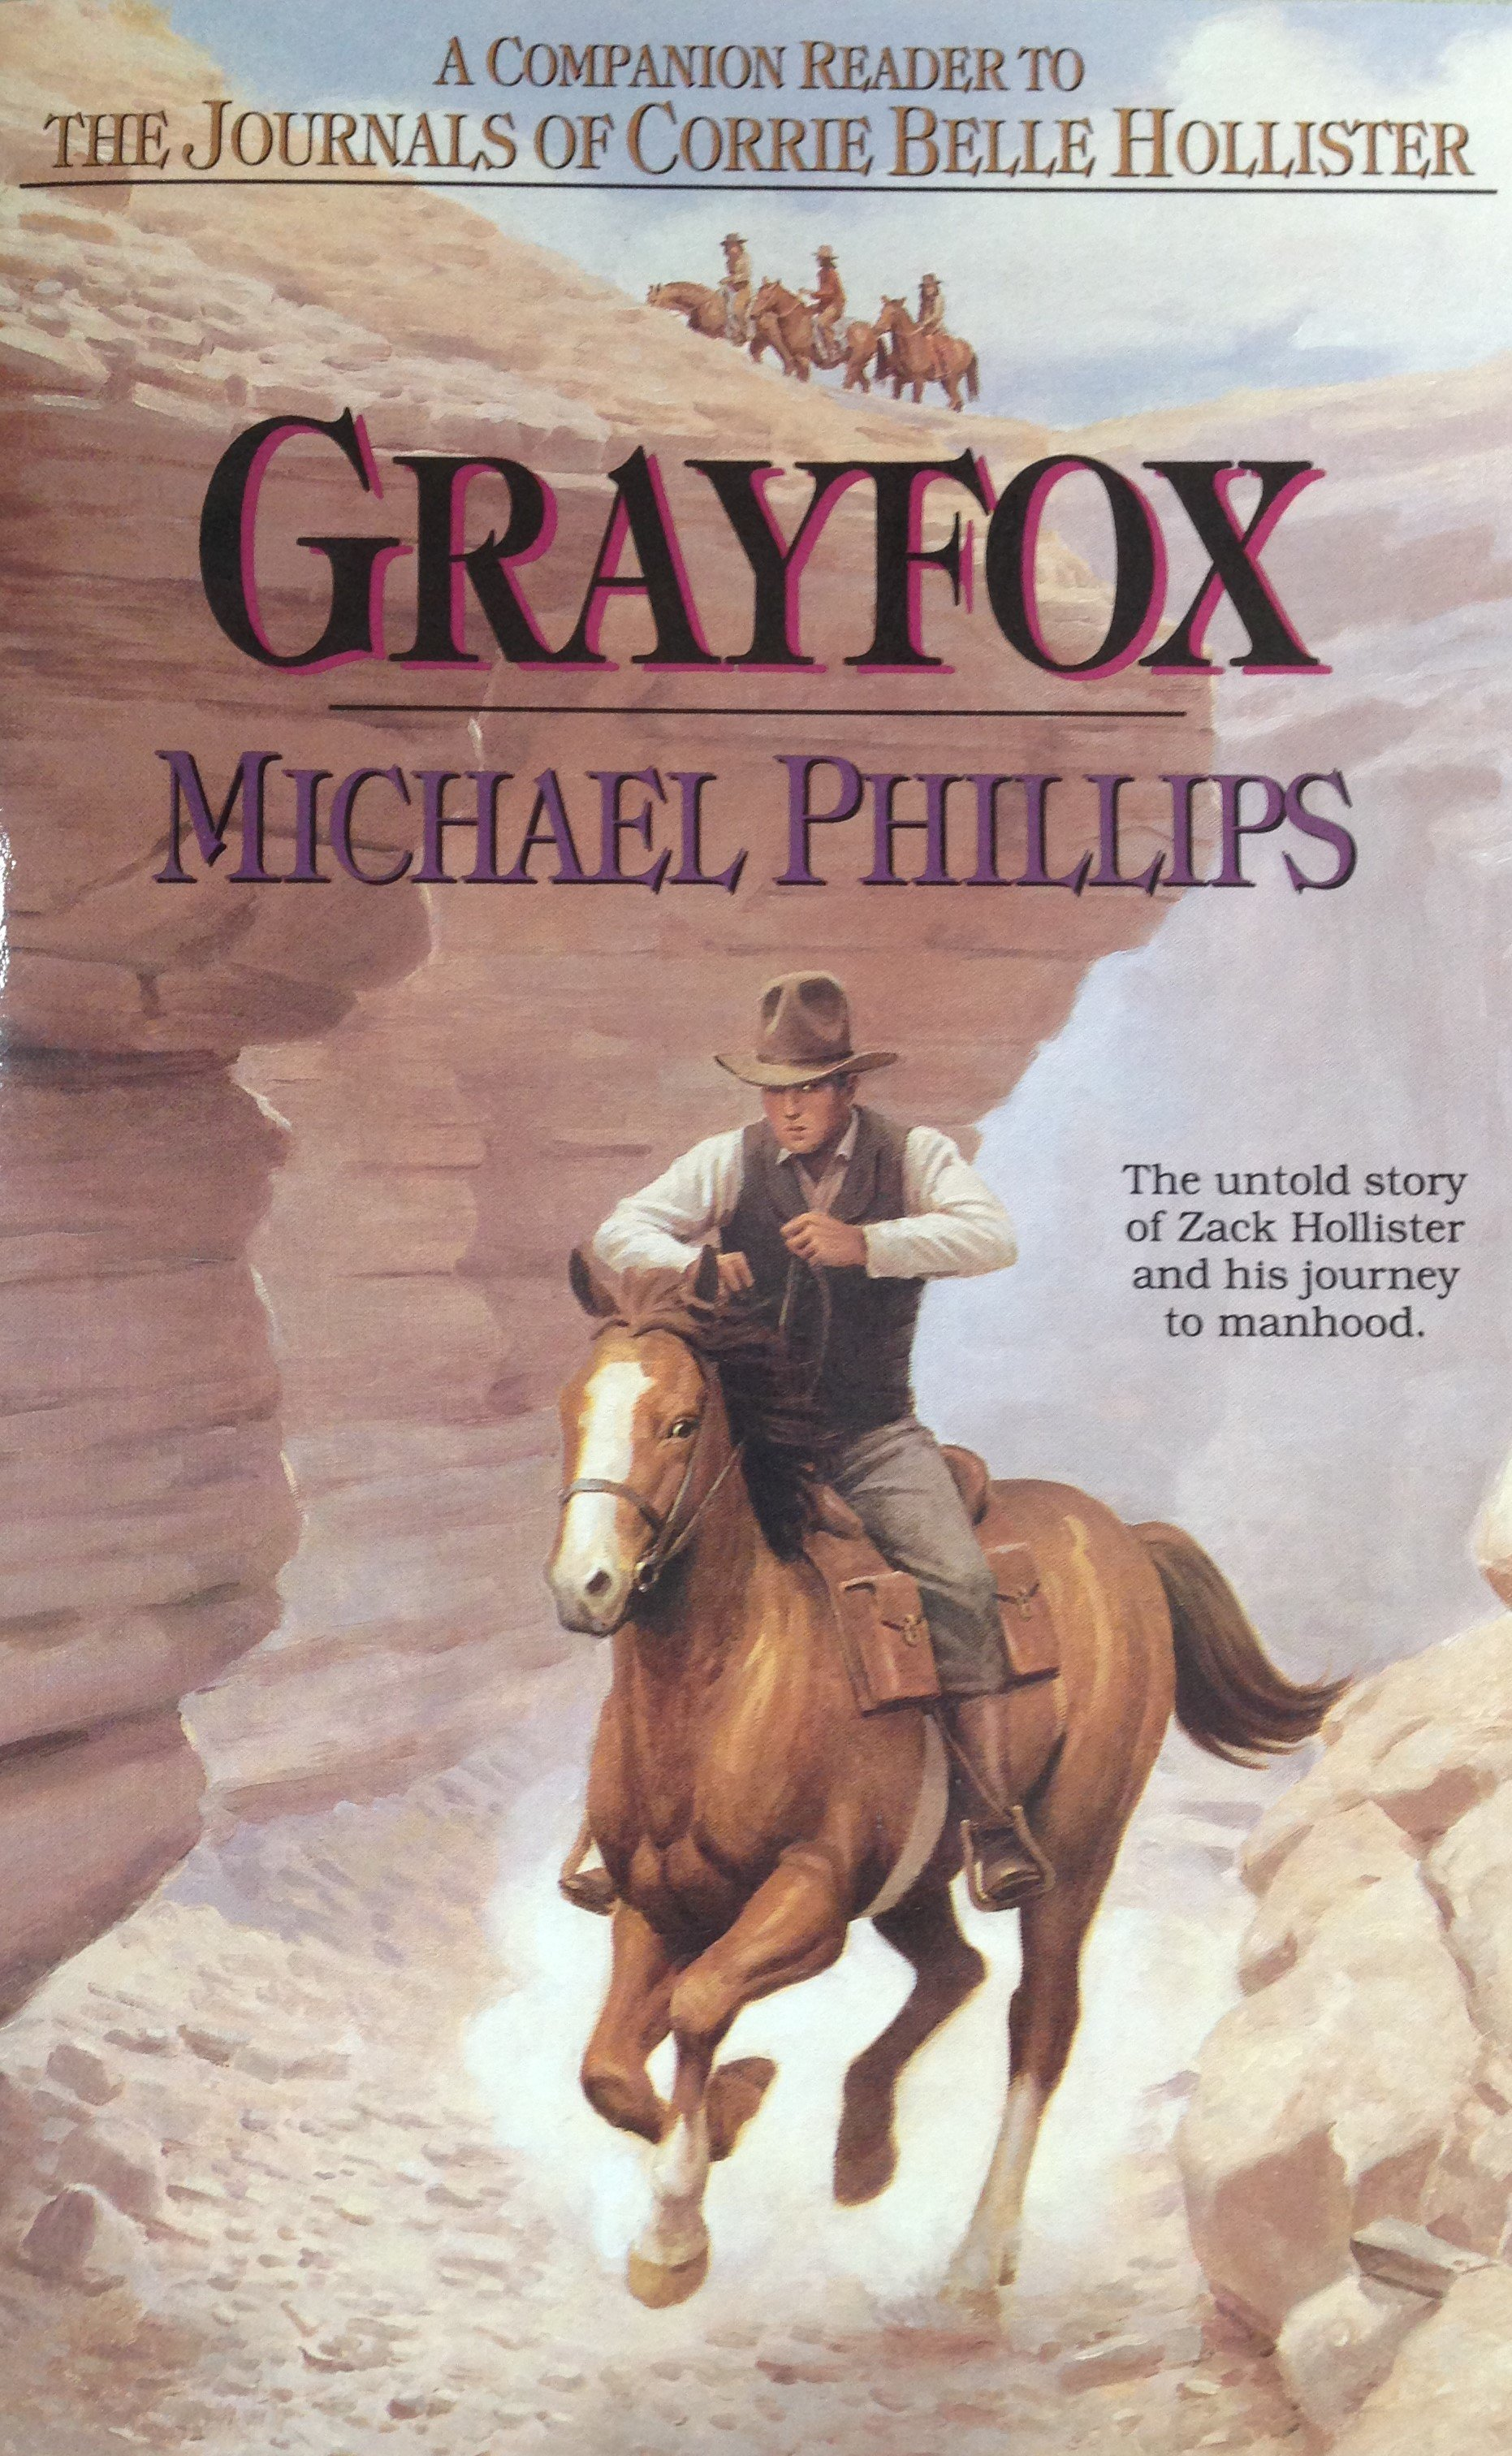 Grayfox:  The untold story of Zack Hollister and his journey to manhood by Michael Phillips 00117